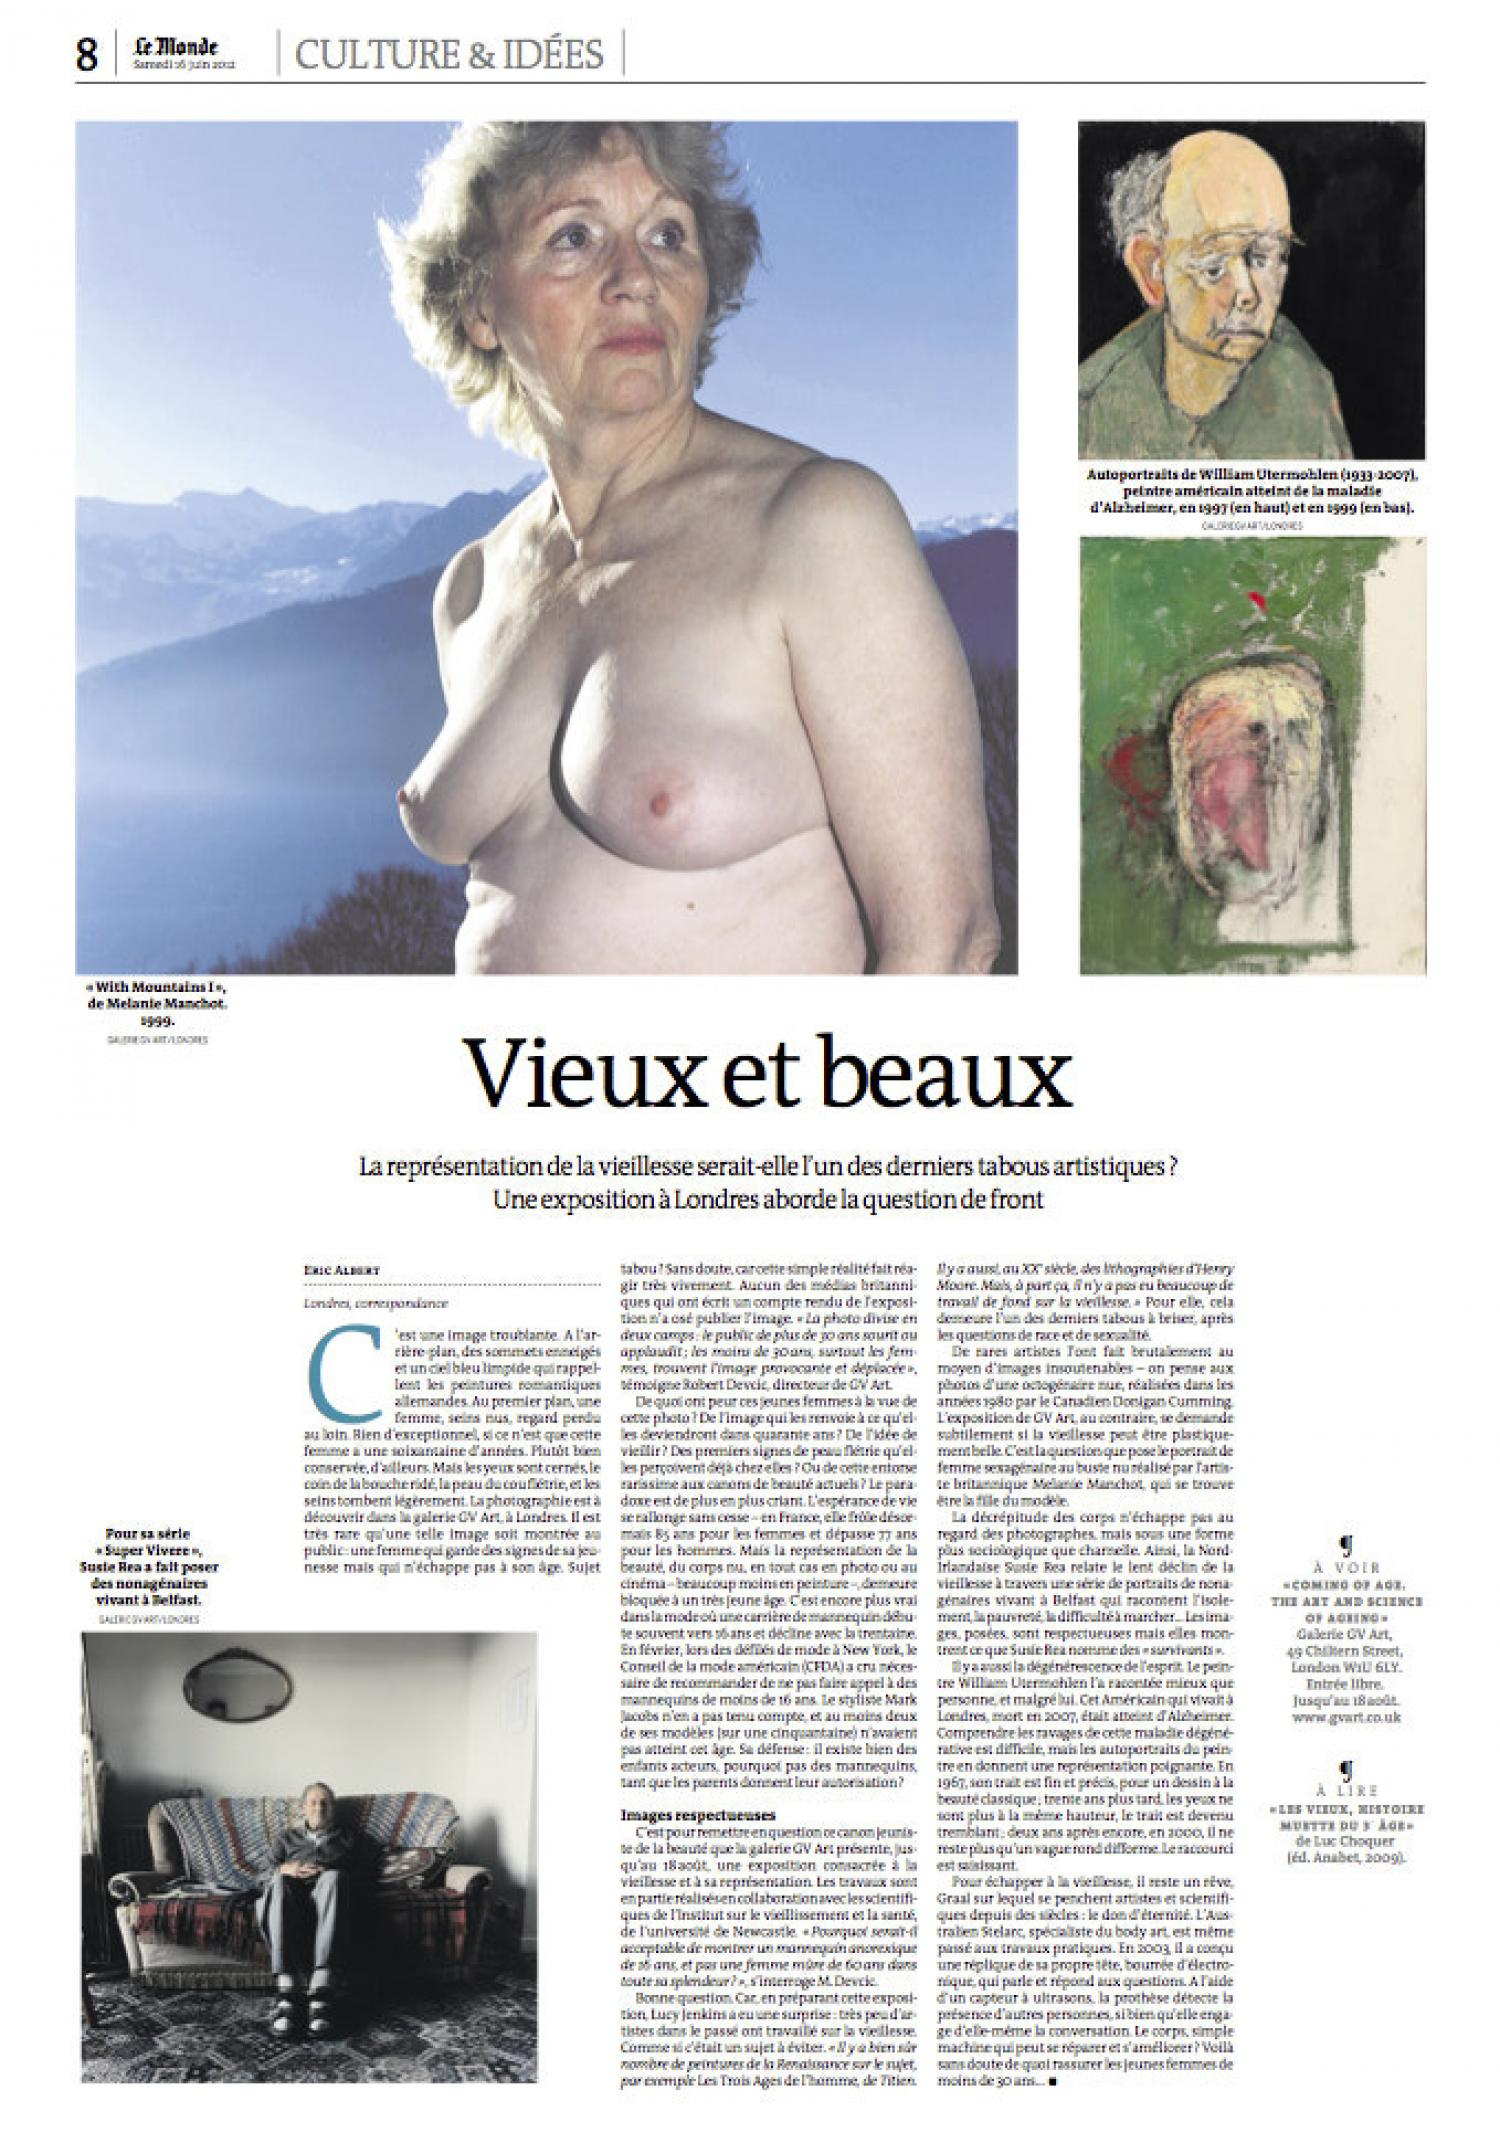 Le Monde Article Coming of Age